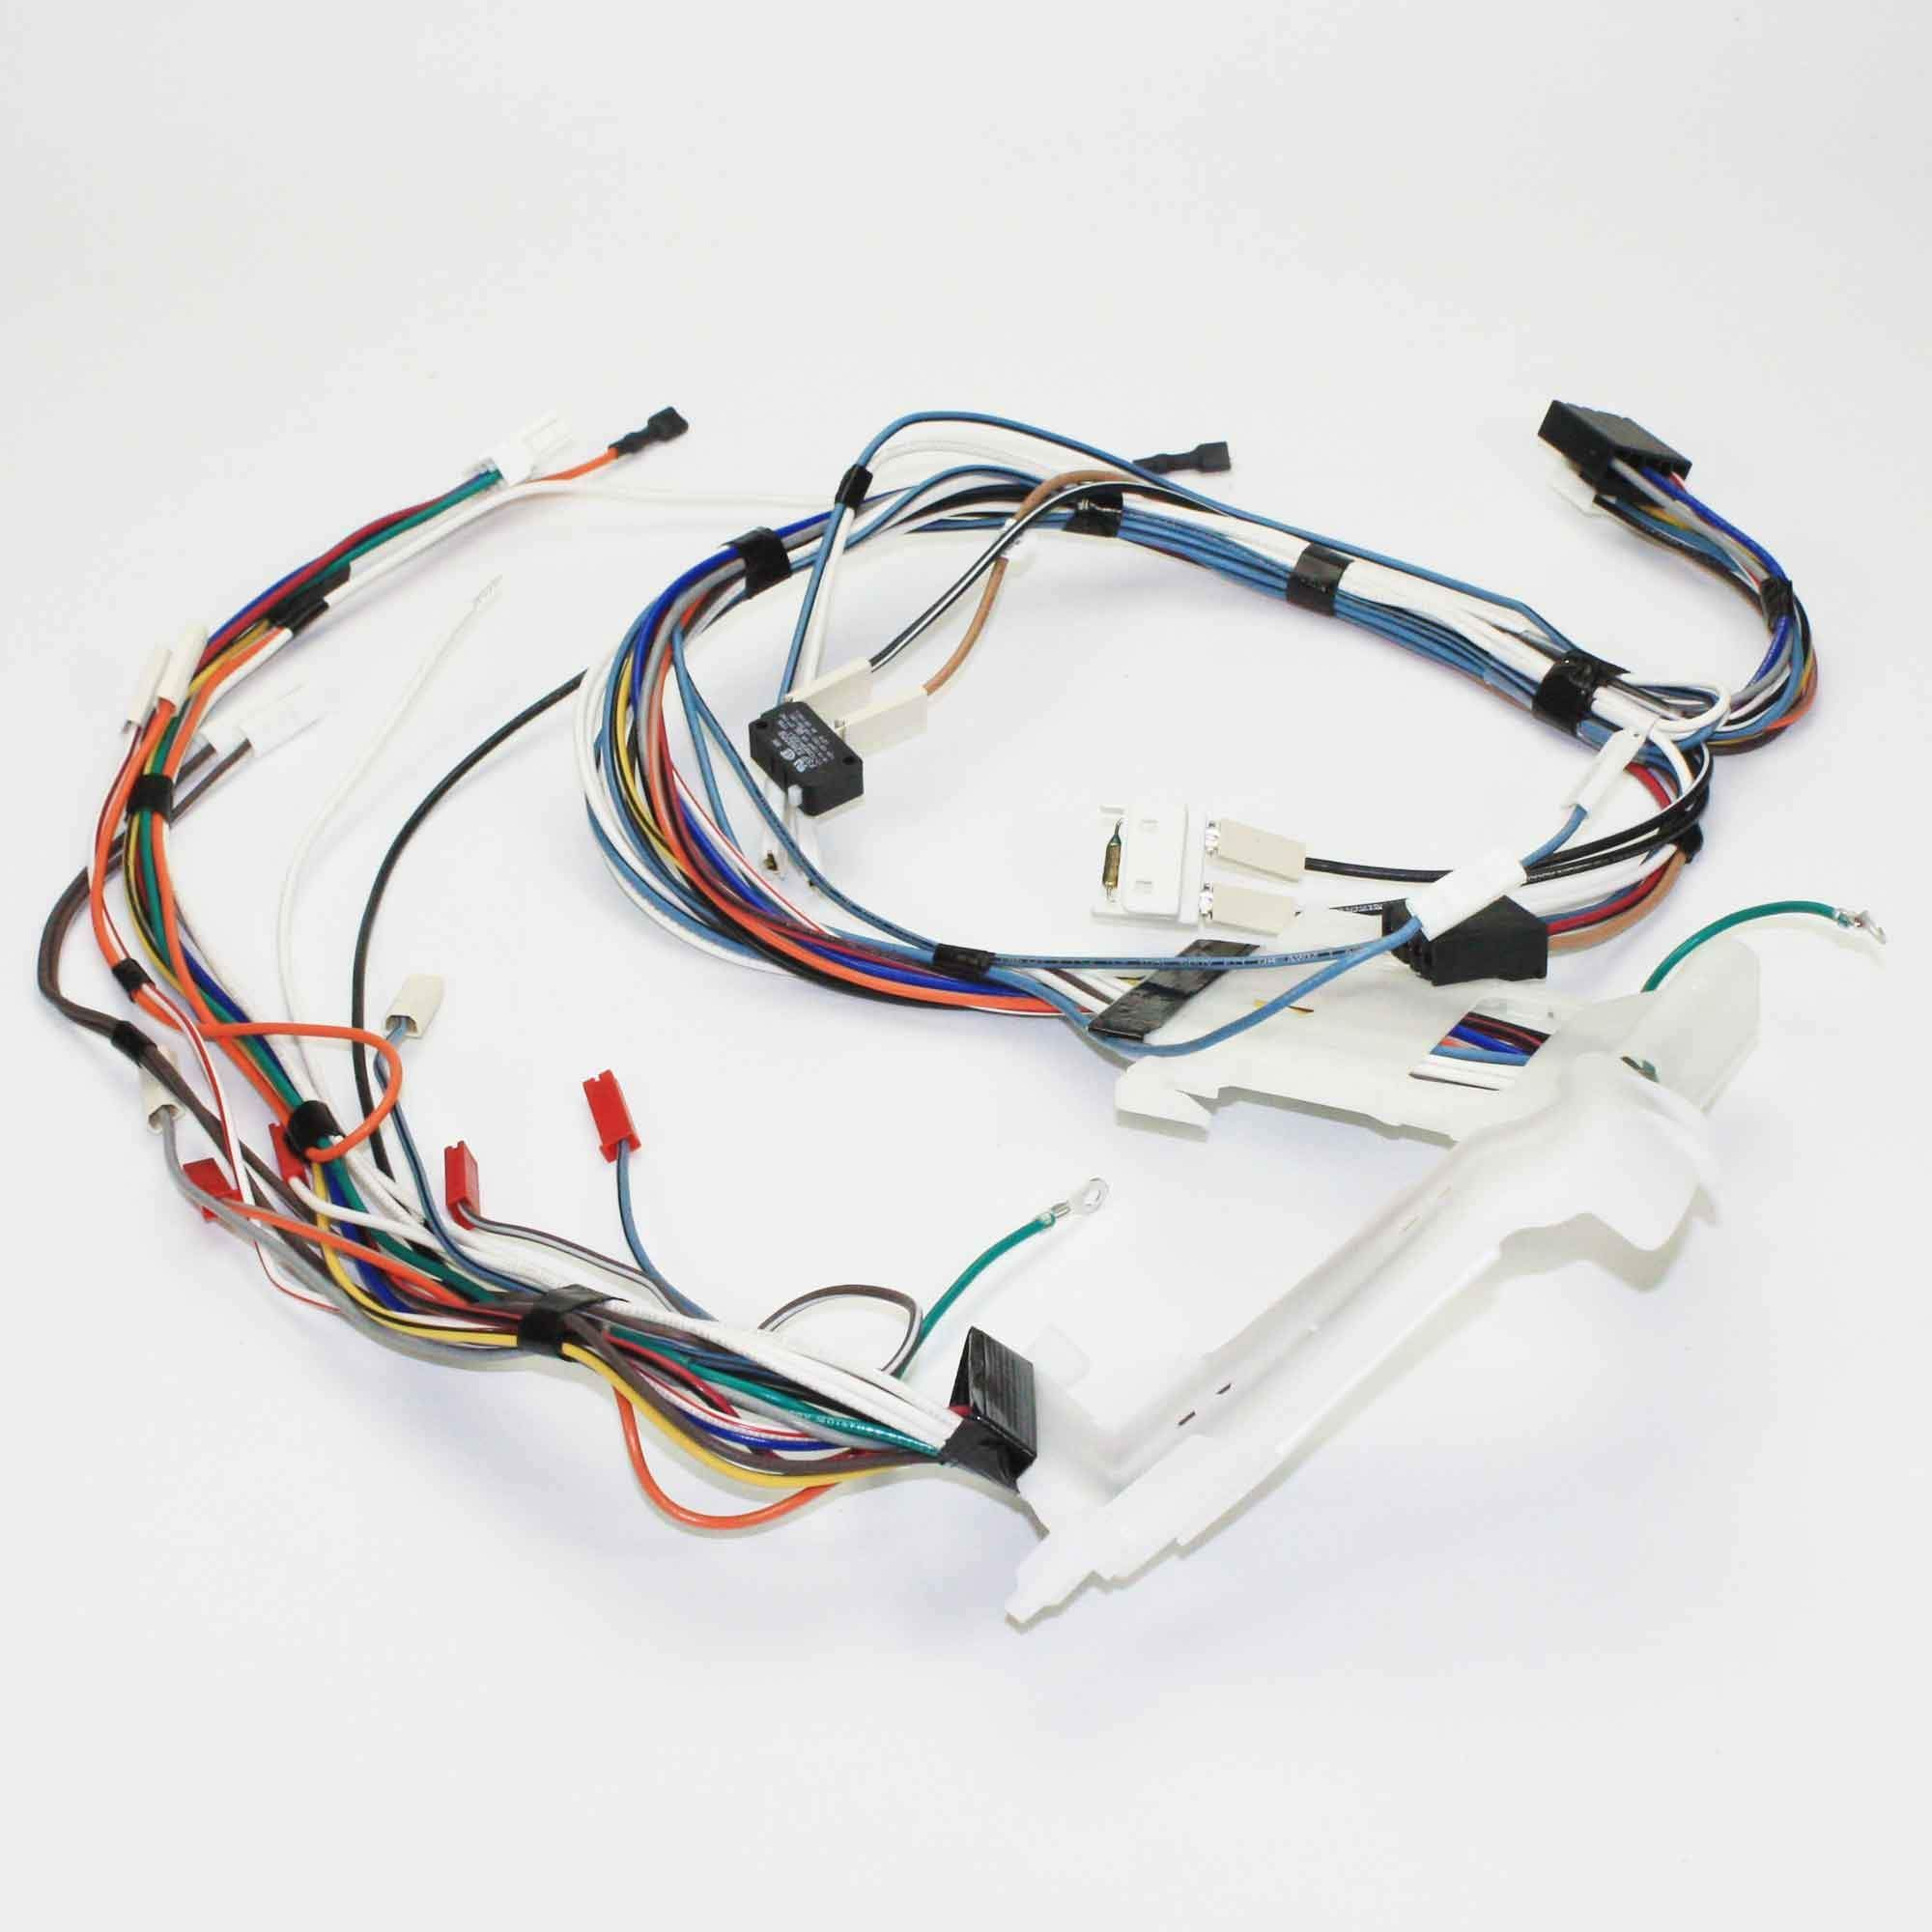 Wp8534932 For Whirlpool Dishwasher Wire Harness Wiring